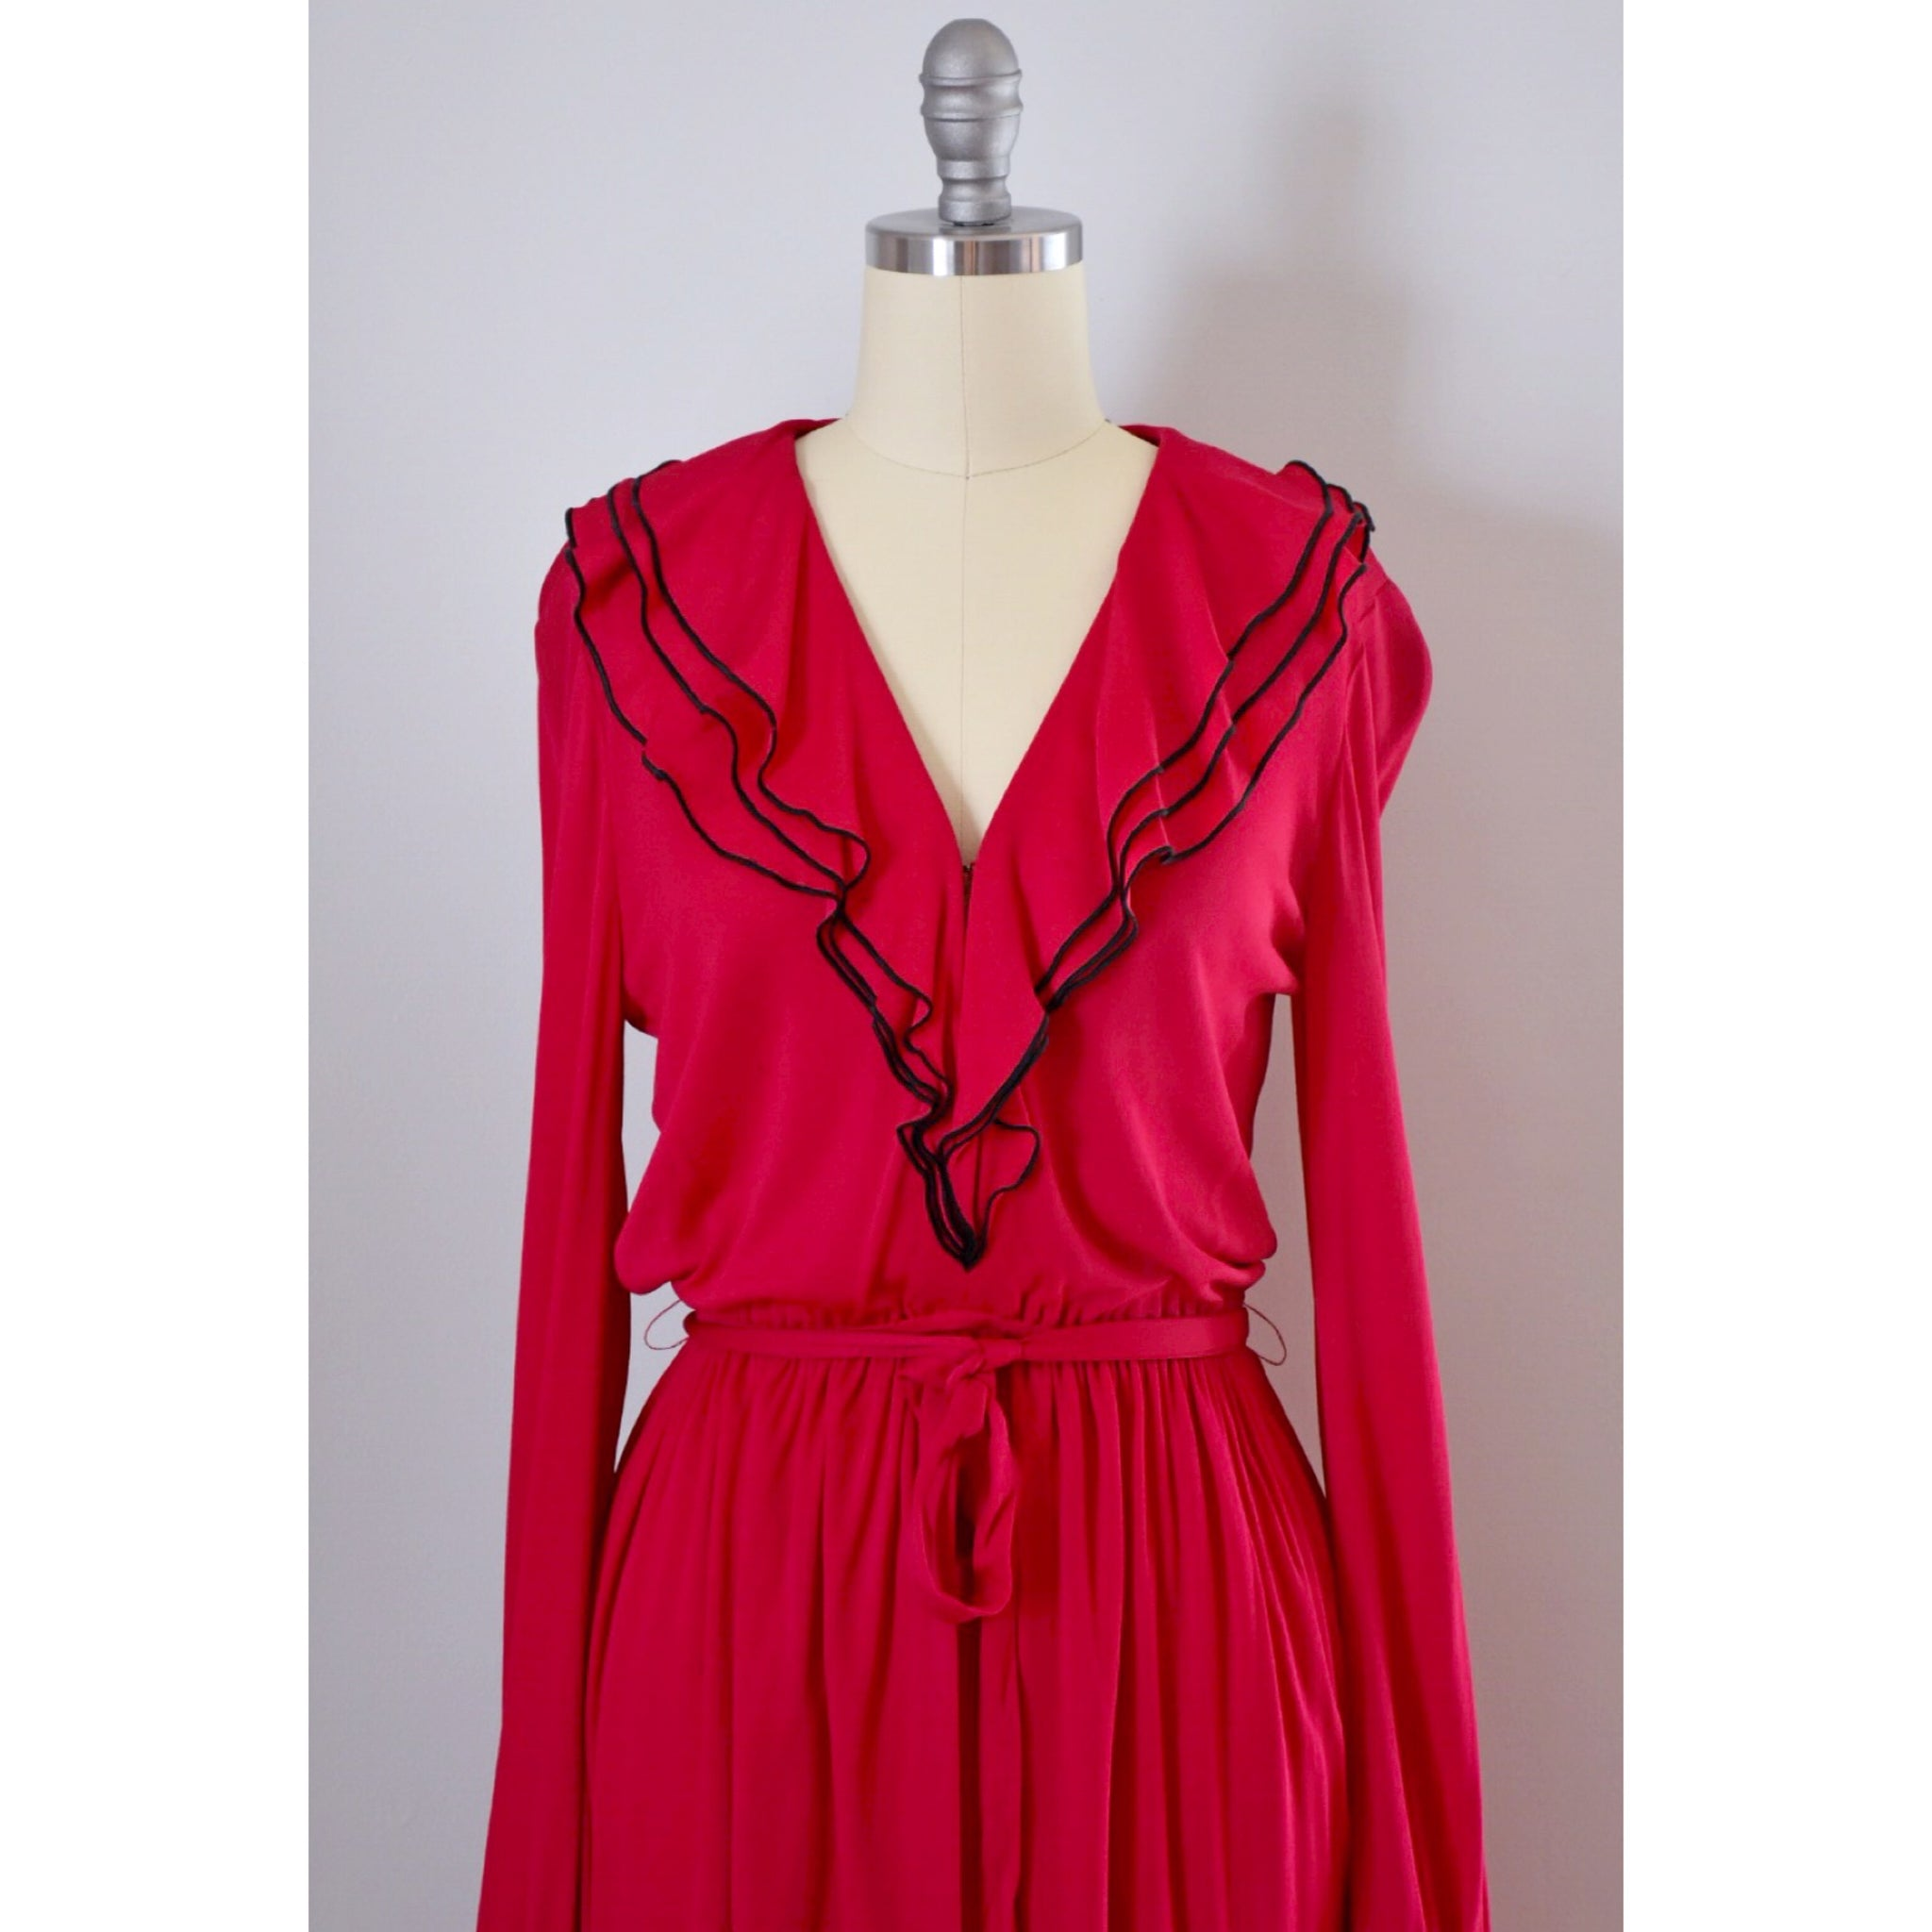 80s /90s Vintage Jill Richards Dress